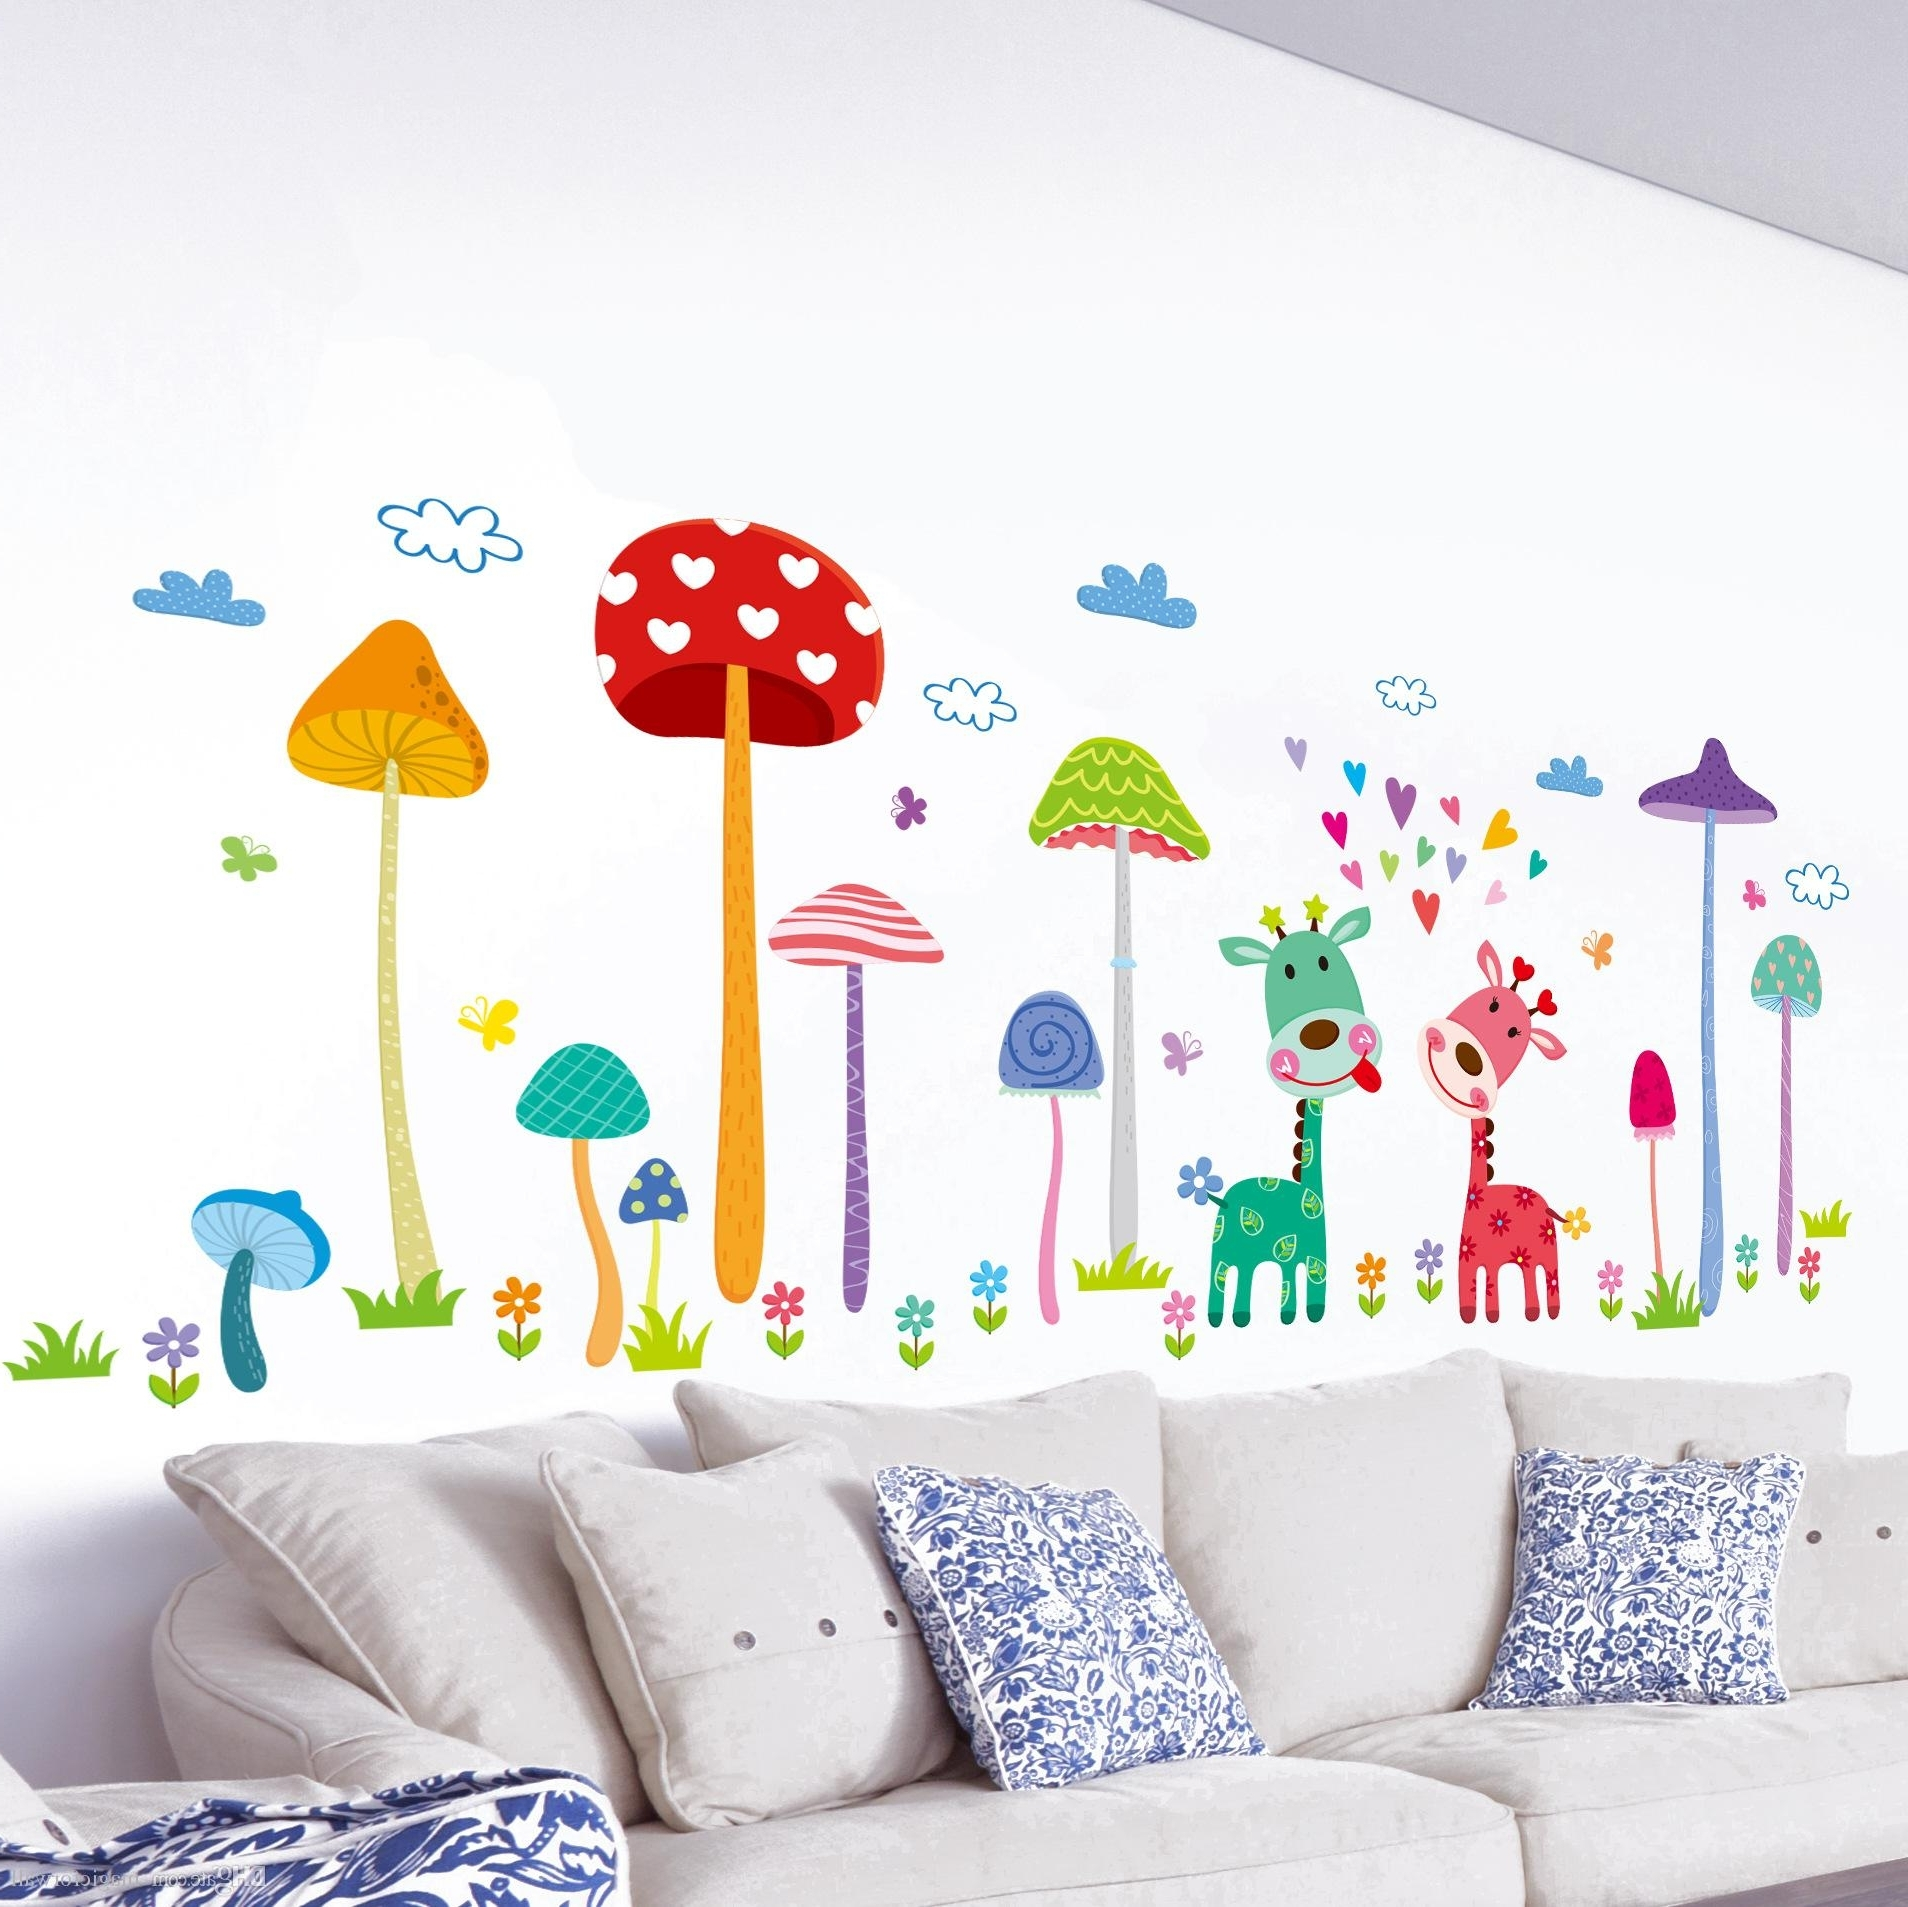 Wall Art Stickers For Childrens Rooms With Fashionable Forest Mushroom Deer Animals Home Wall Art Mural Decor Kids Babies (View 12 of 15)